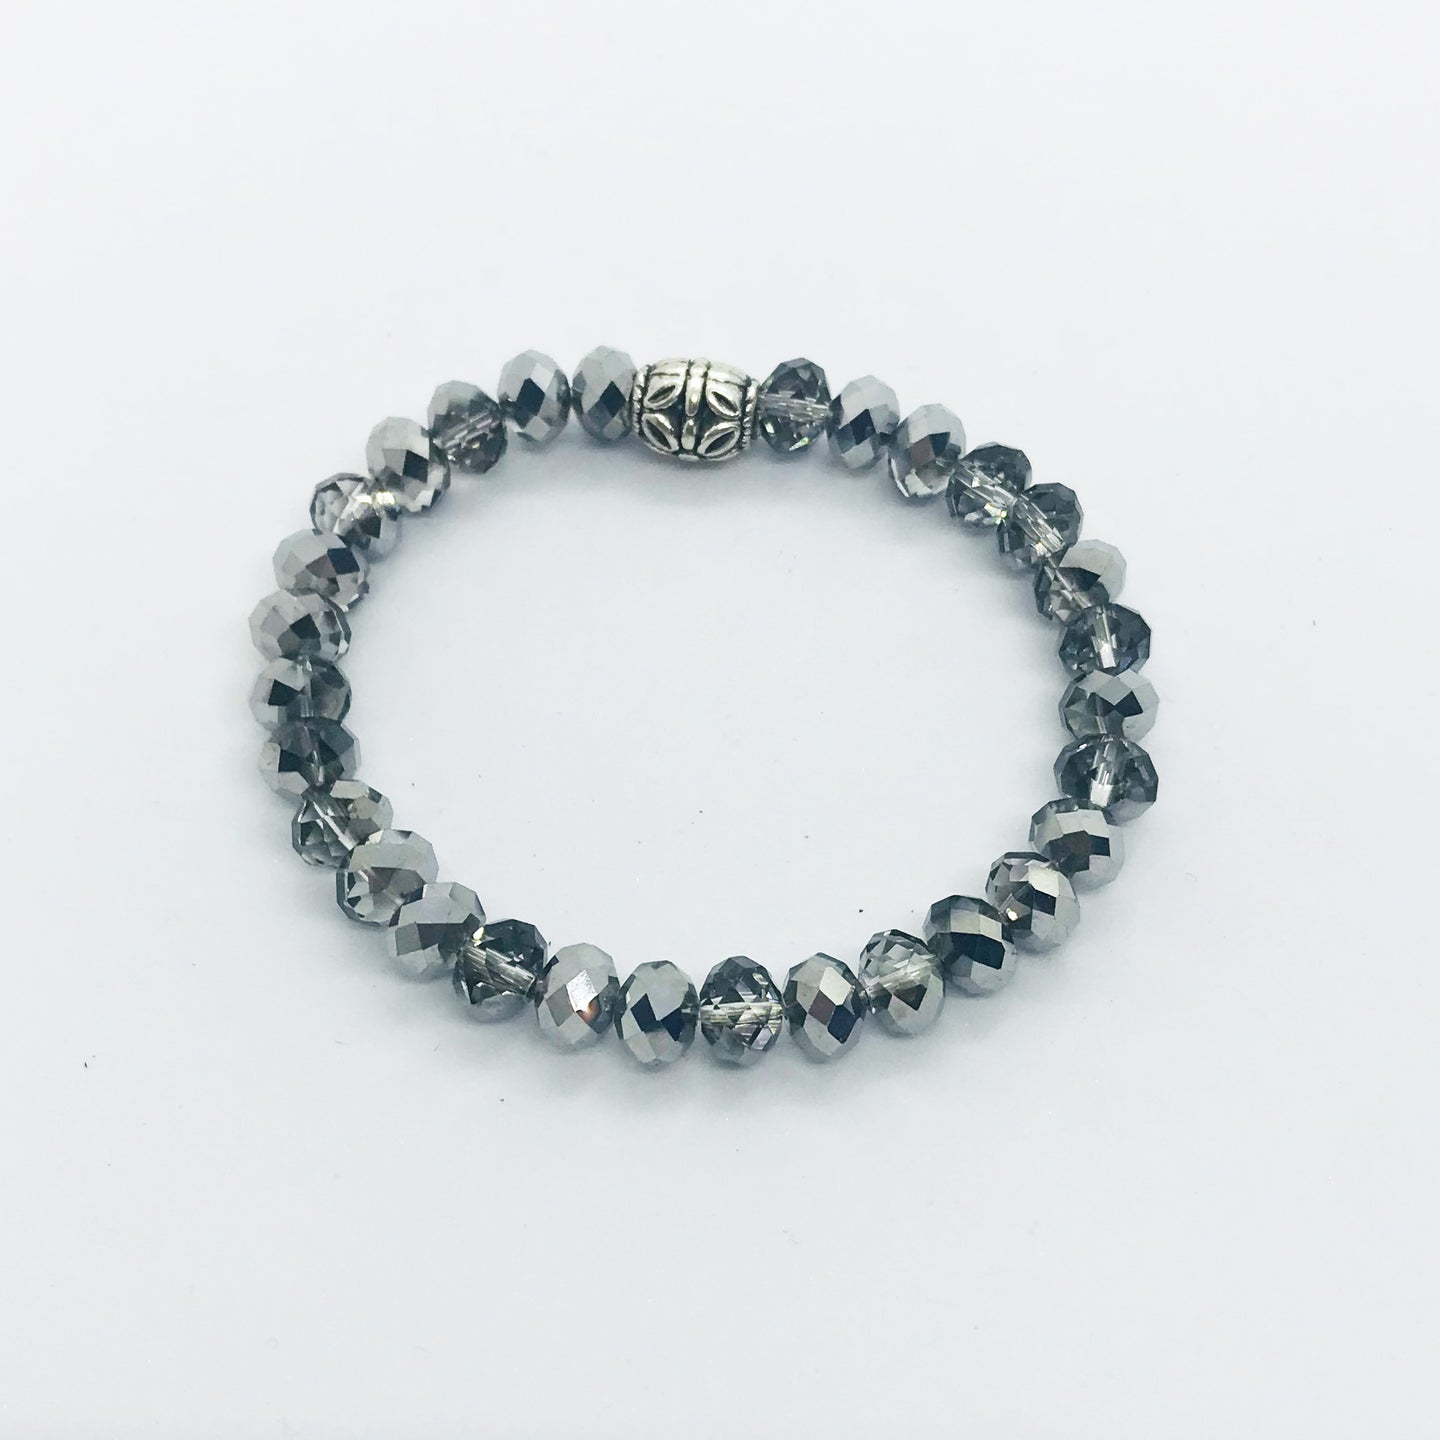 Glass Bead Stretchy Bracelet - B573